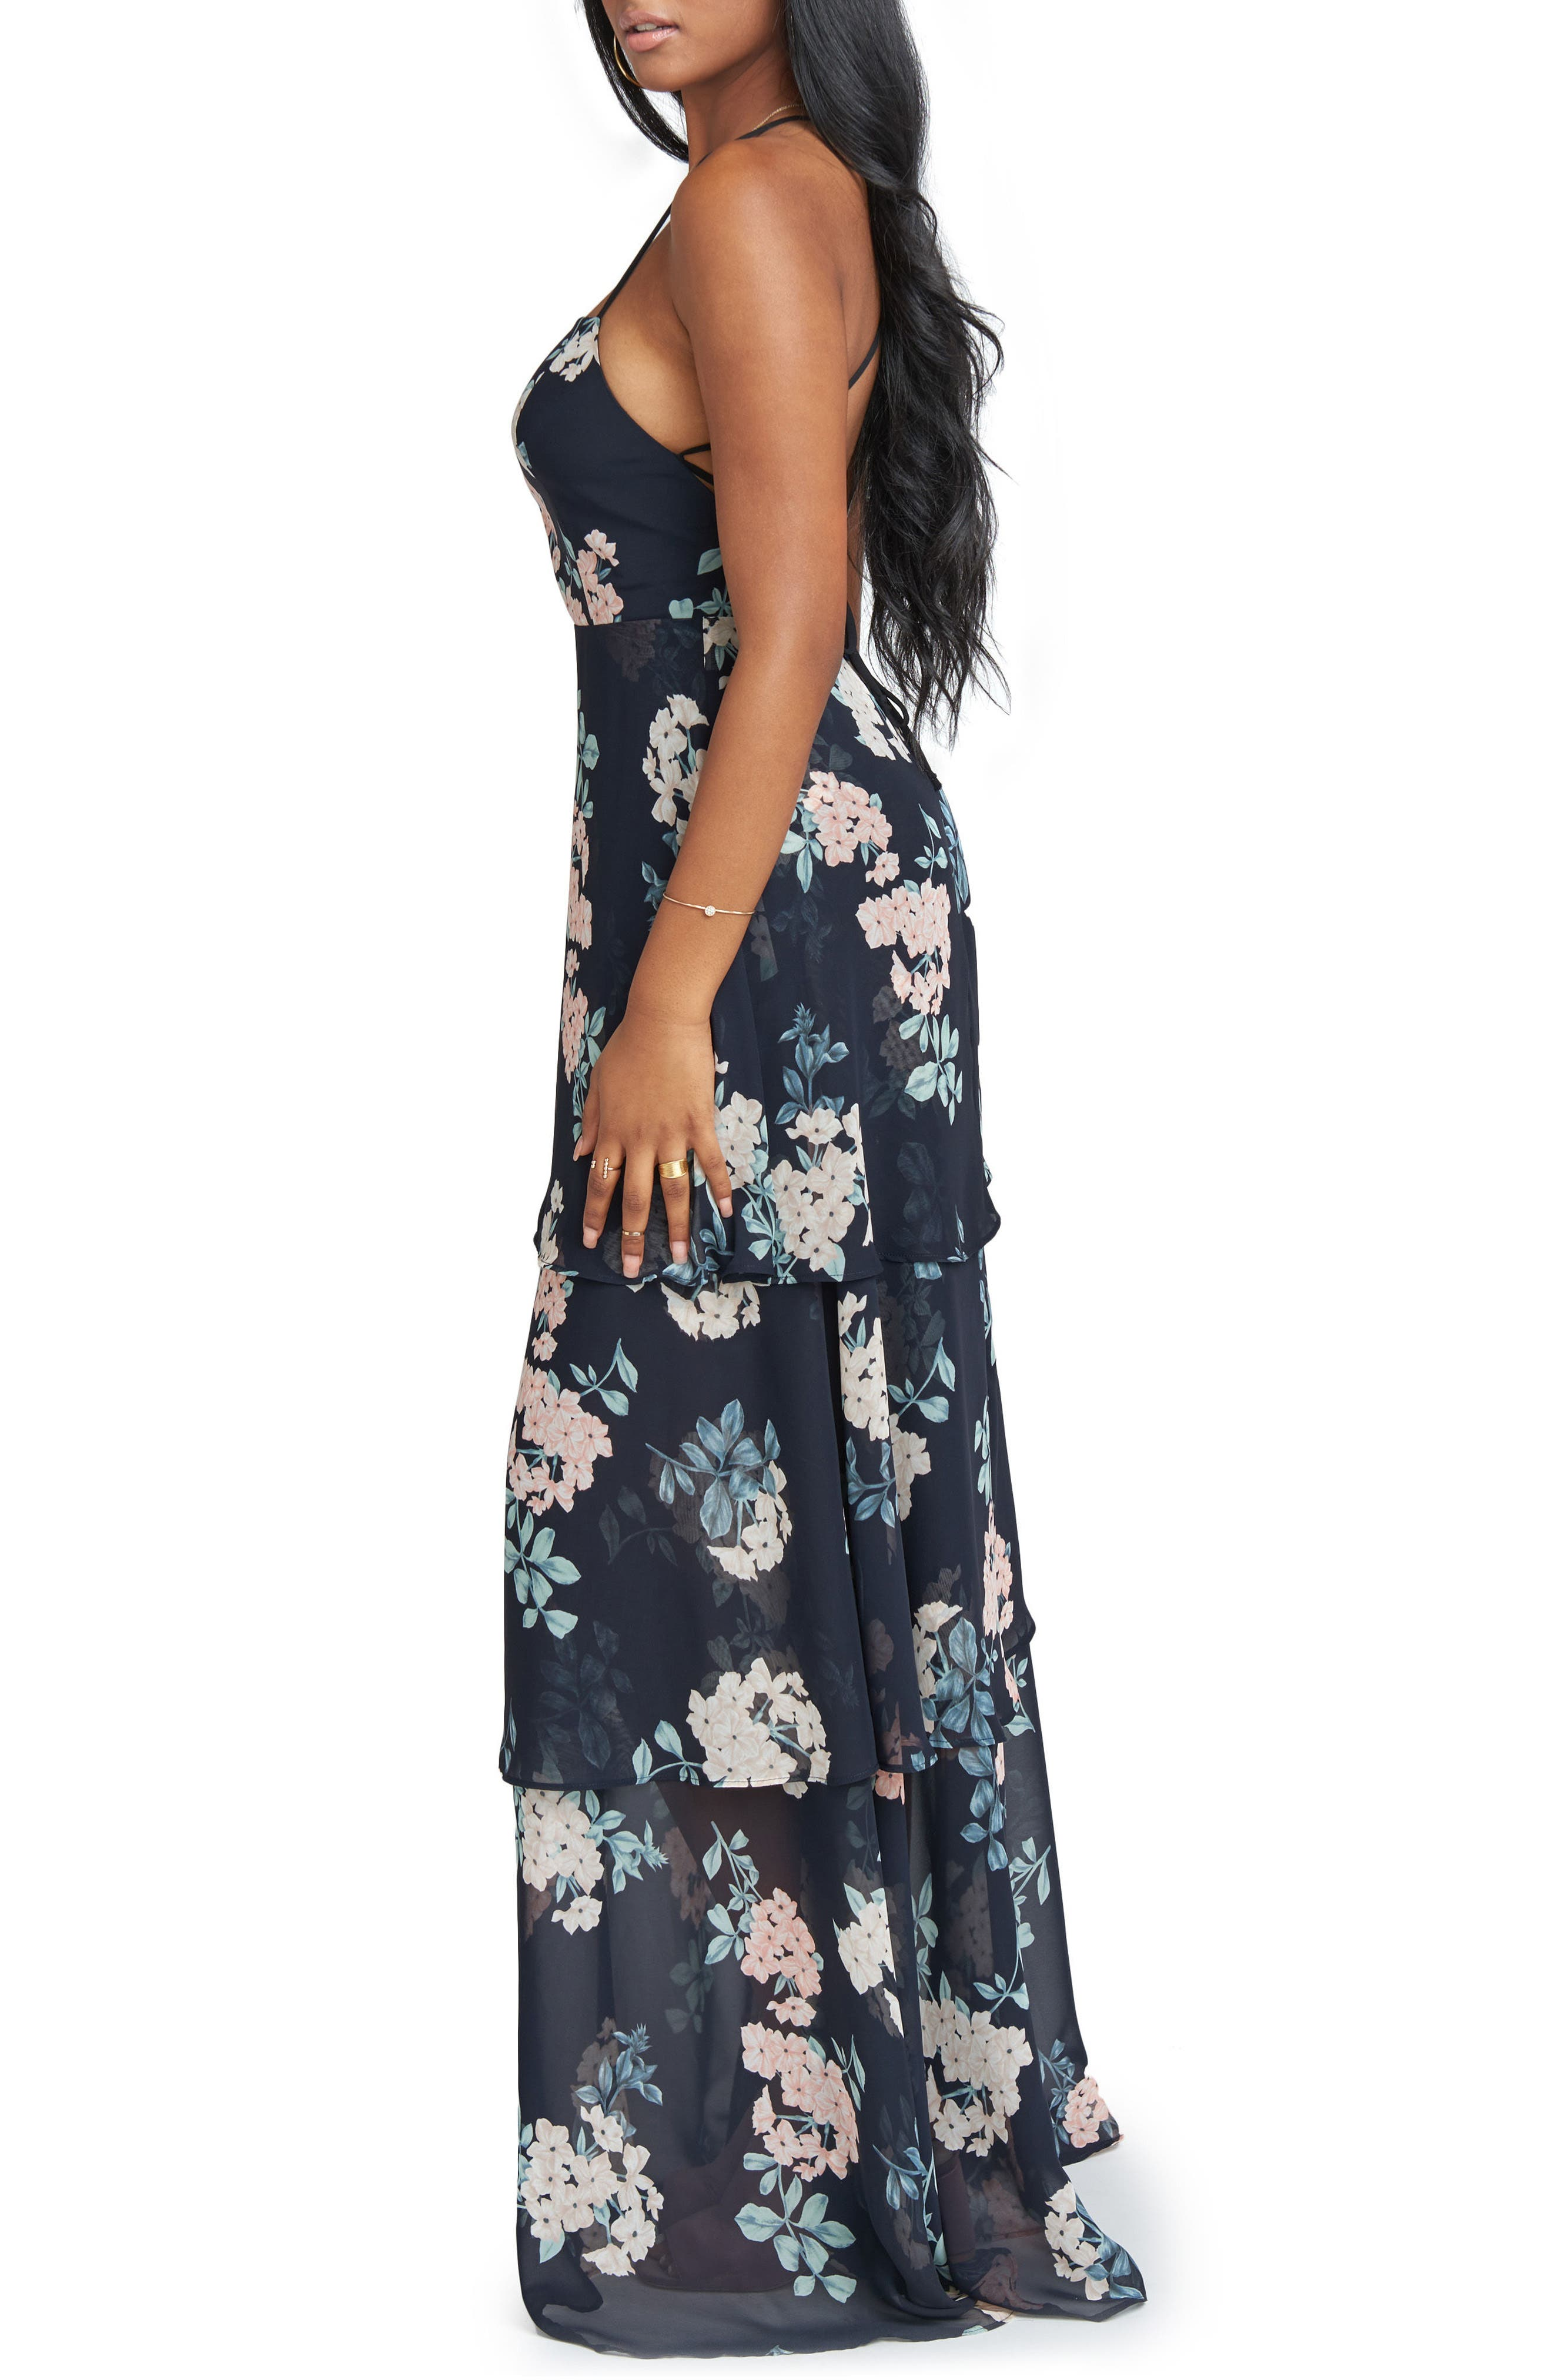 Calypso Strappy Tiered Maxi Dress,                             Alternate thumbnail 3, color,                             001